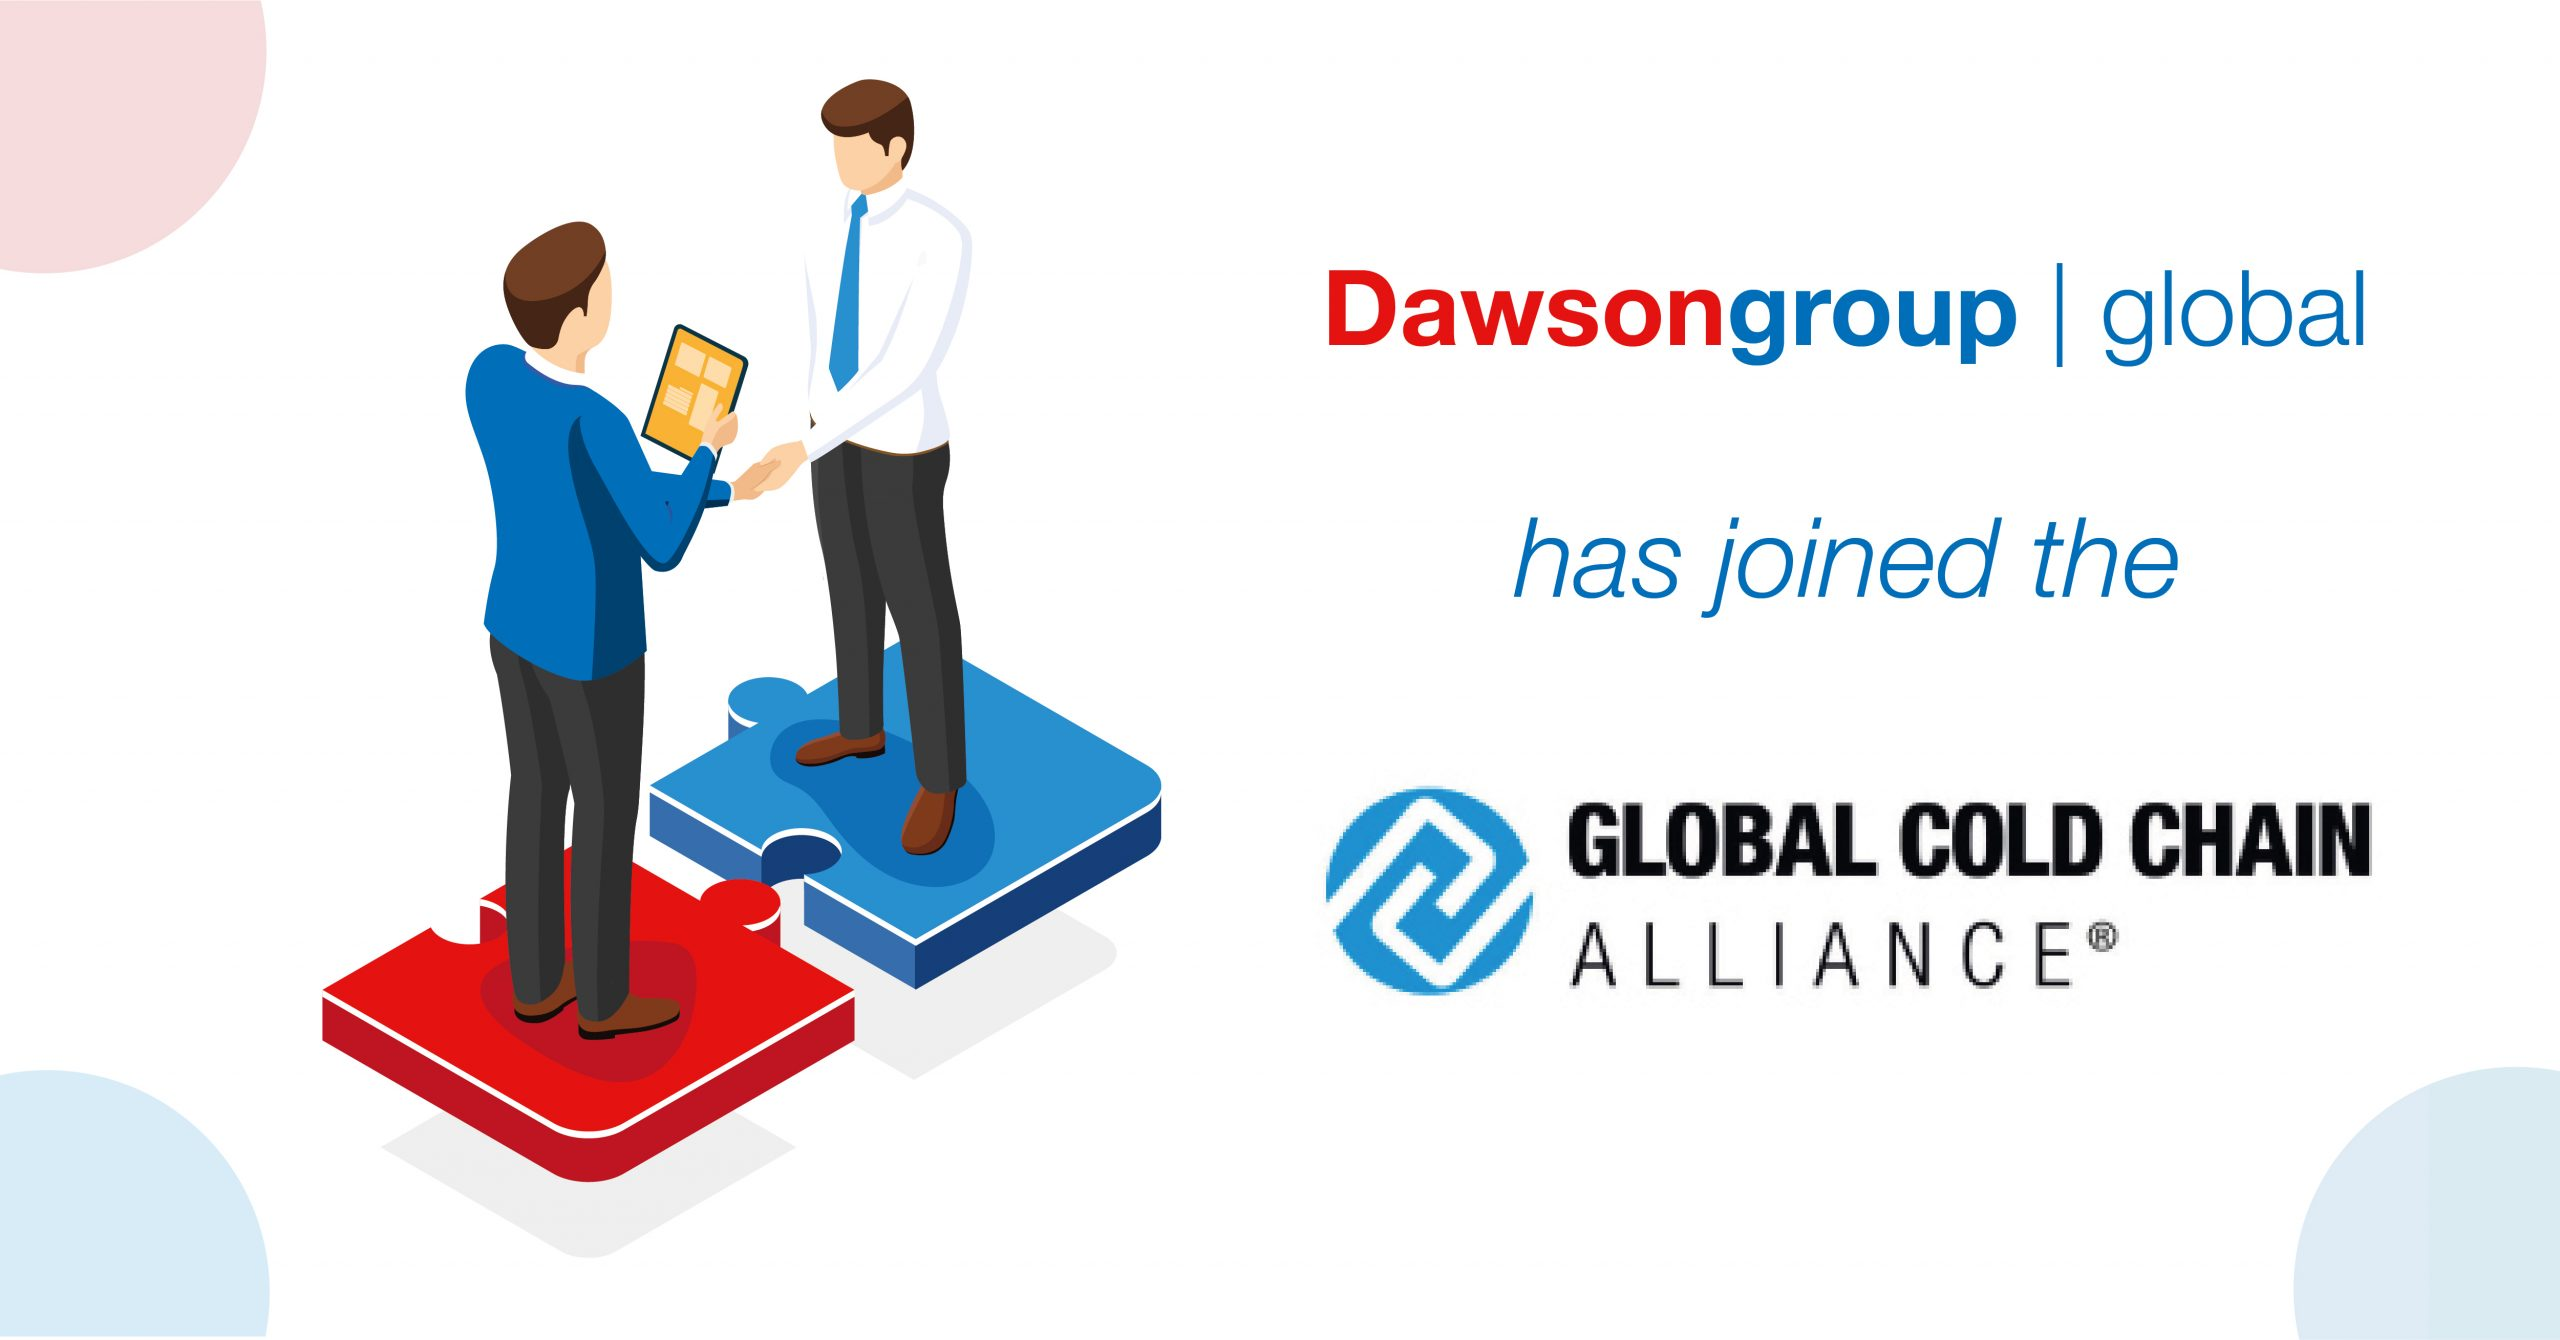 Joining global cold chain alliance